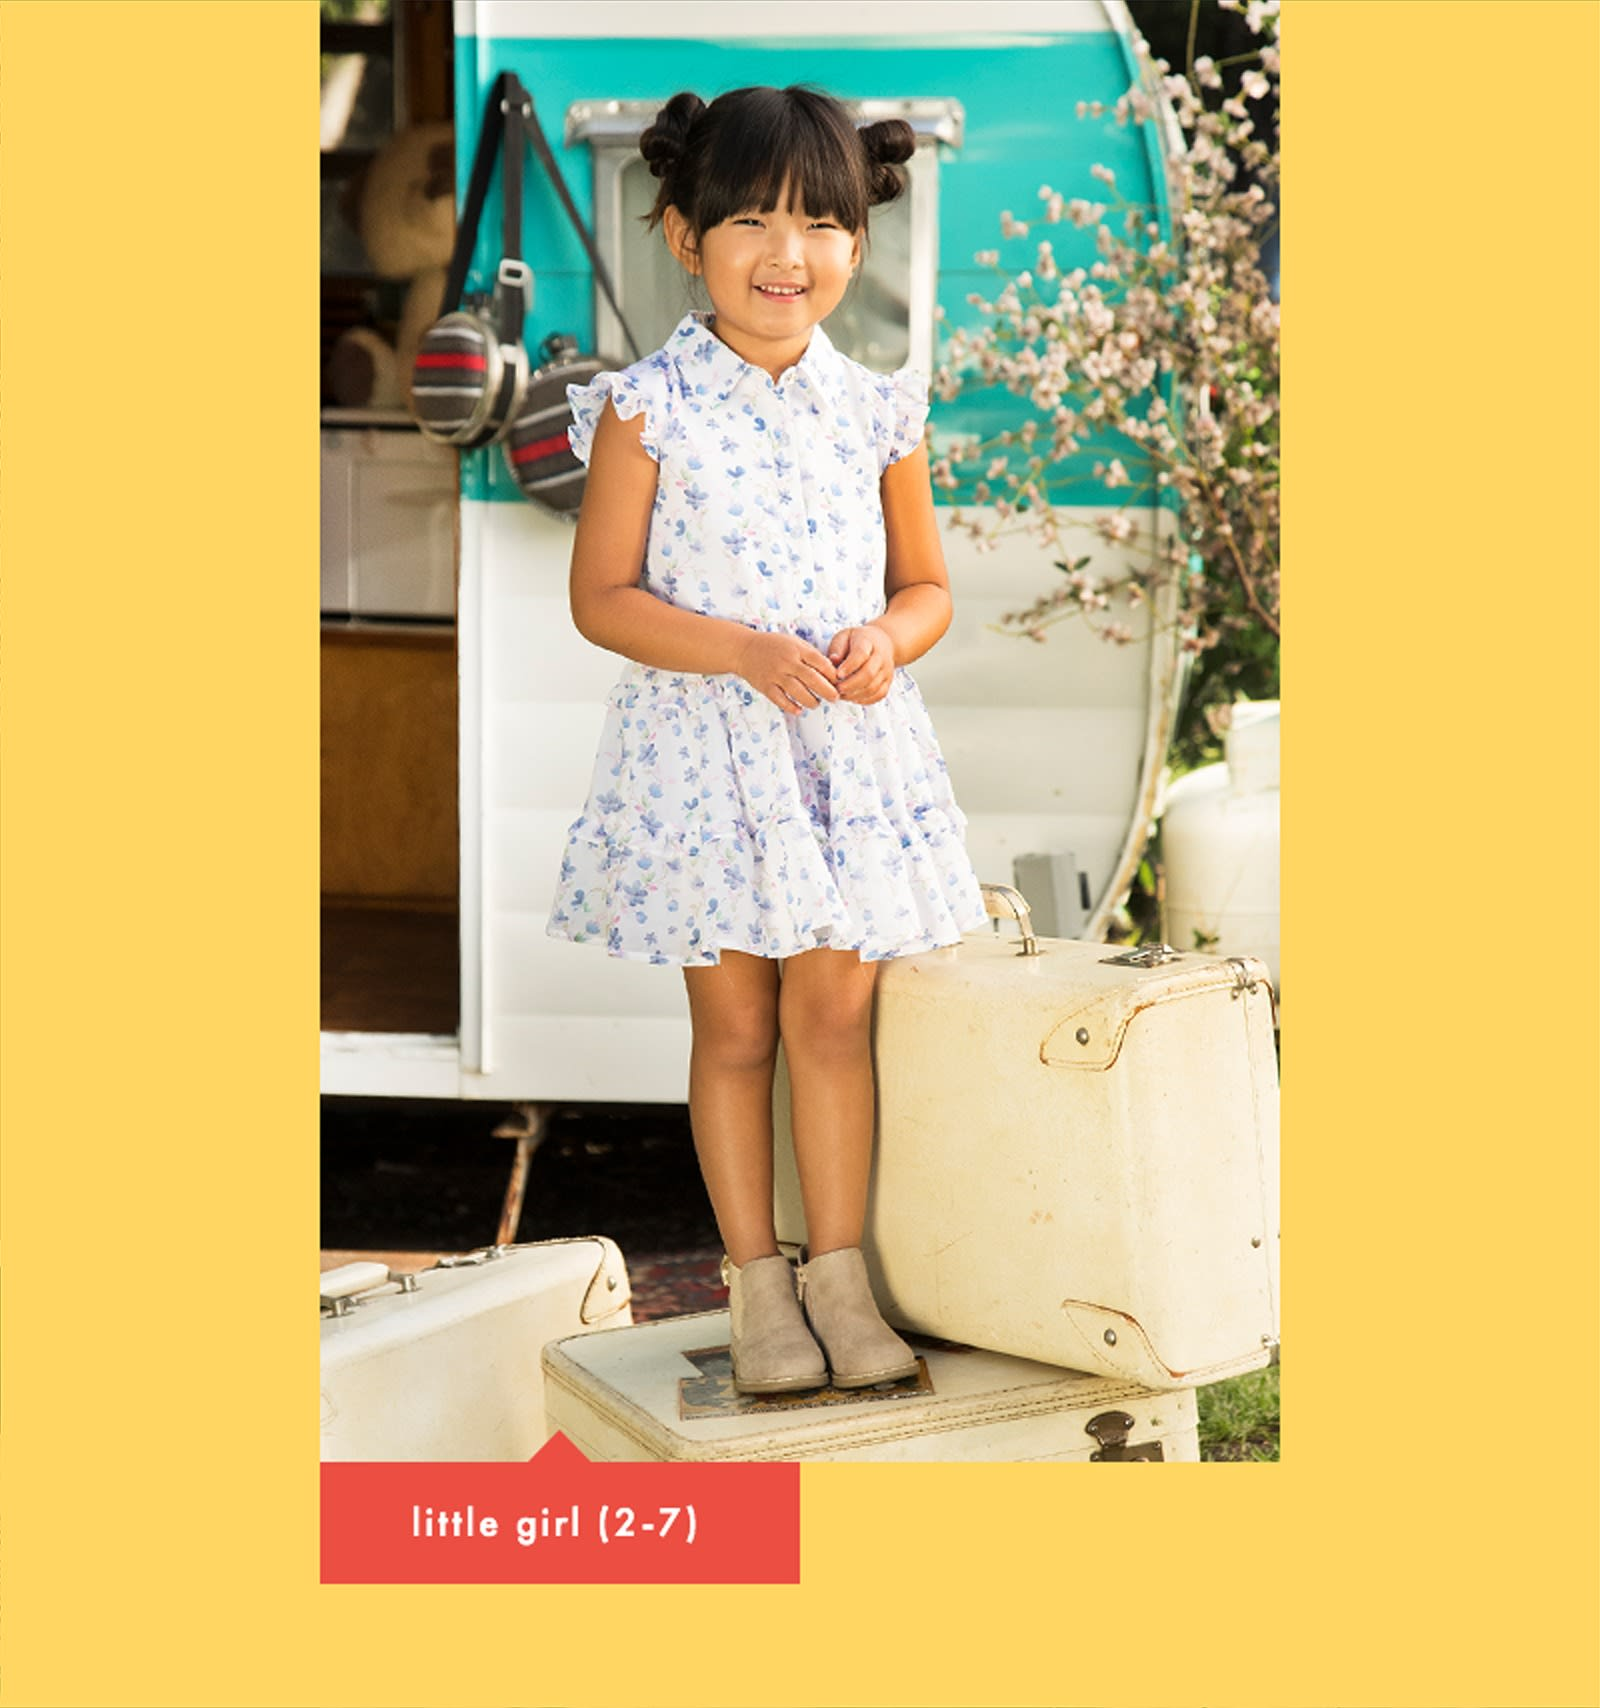 little girl 2-7